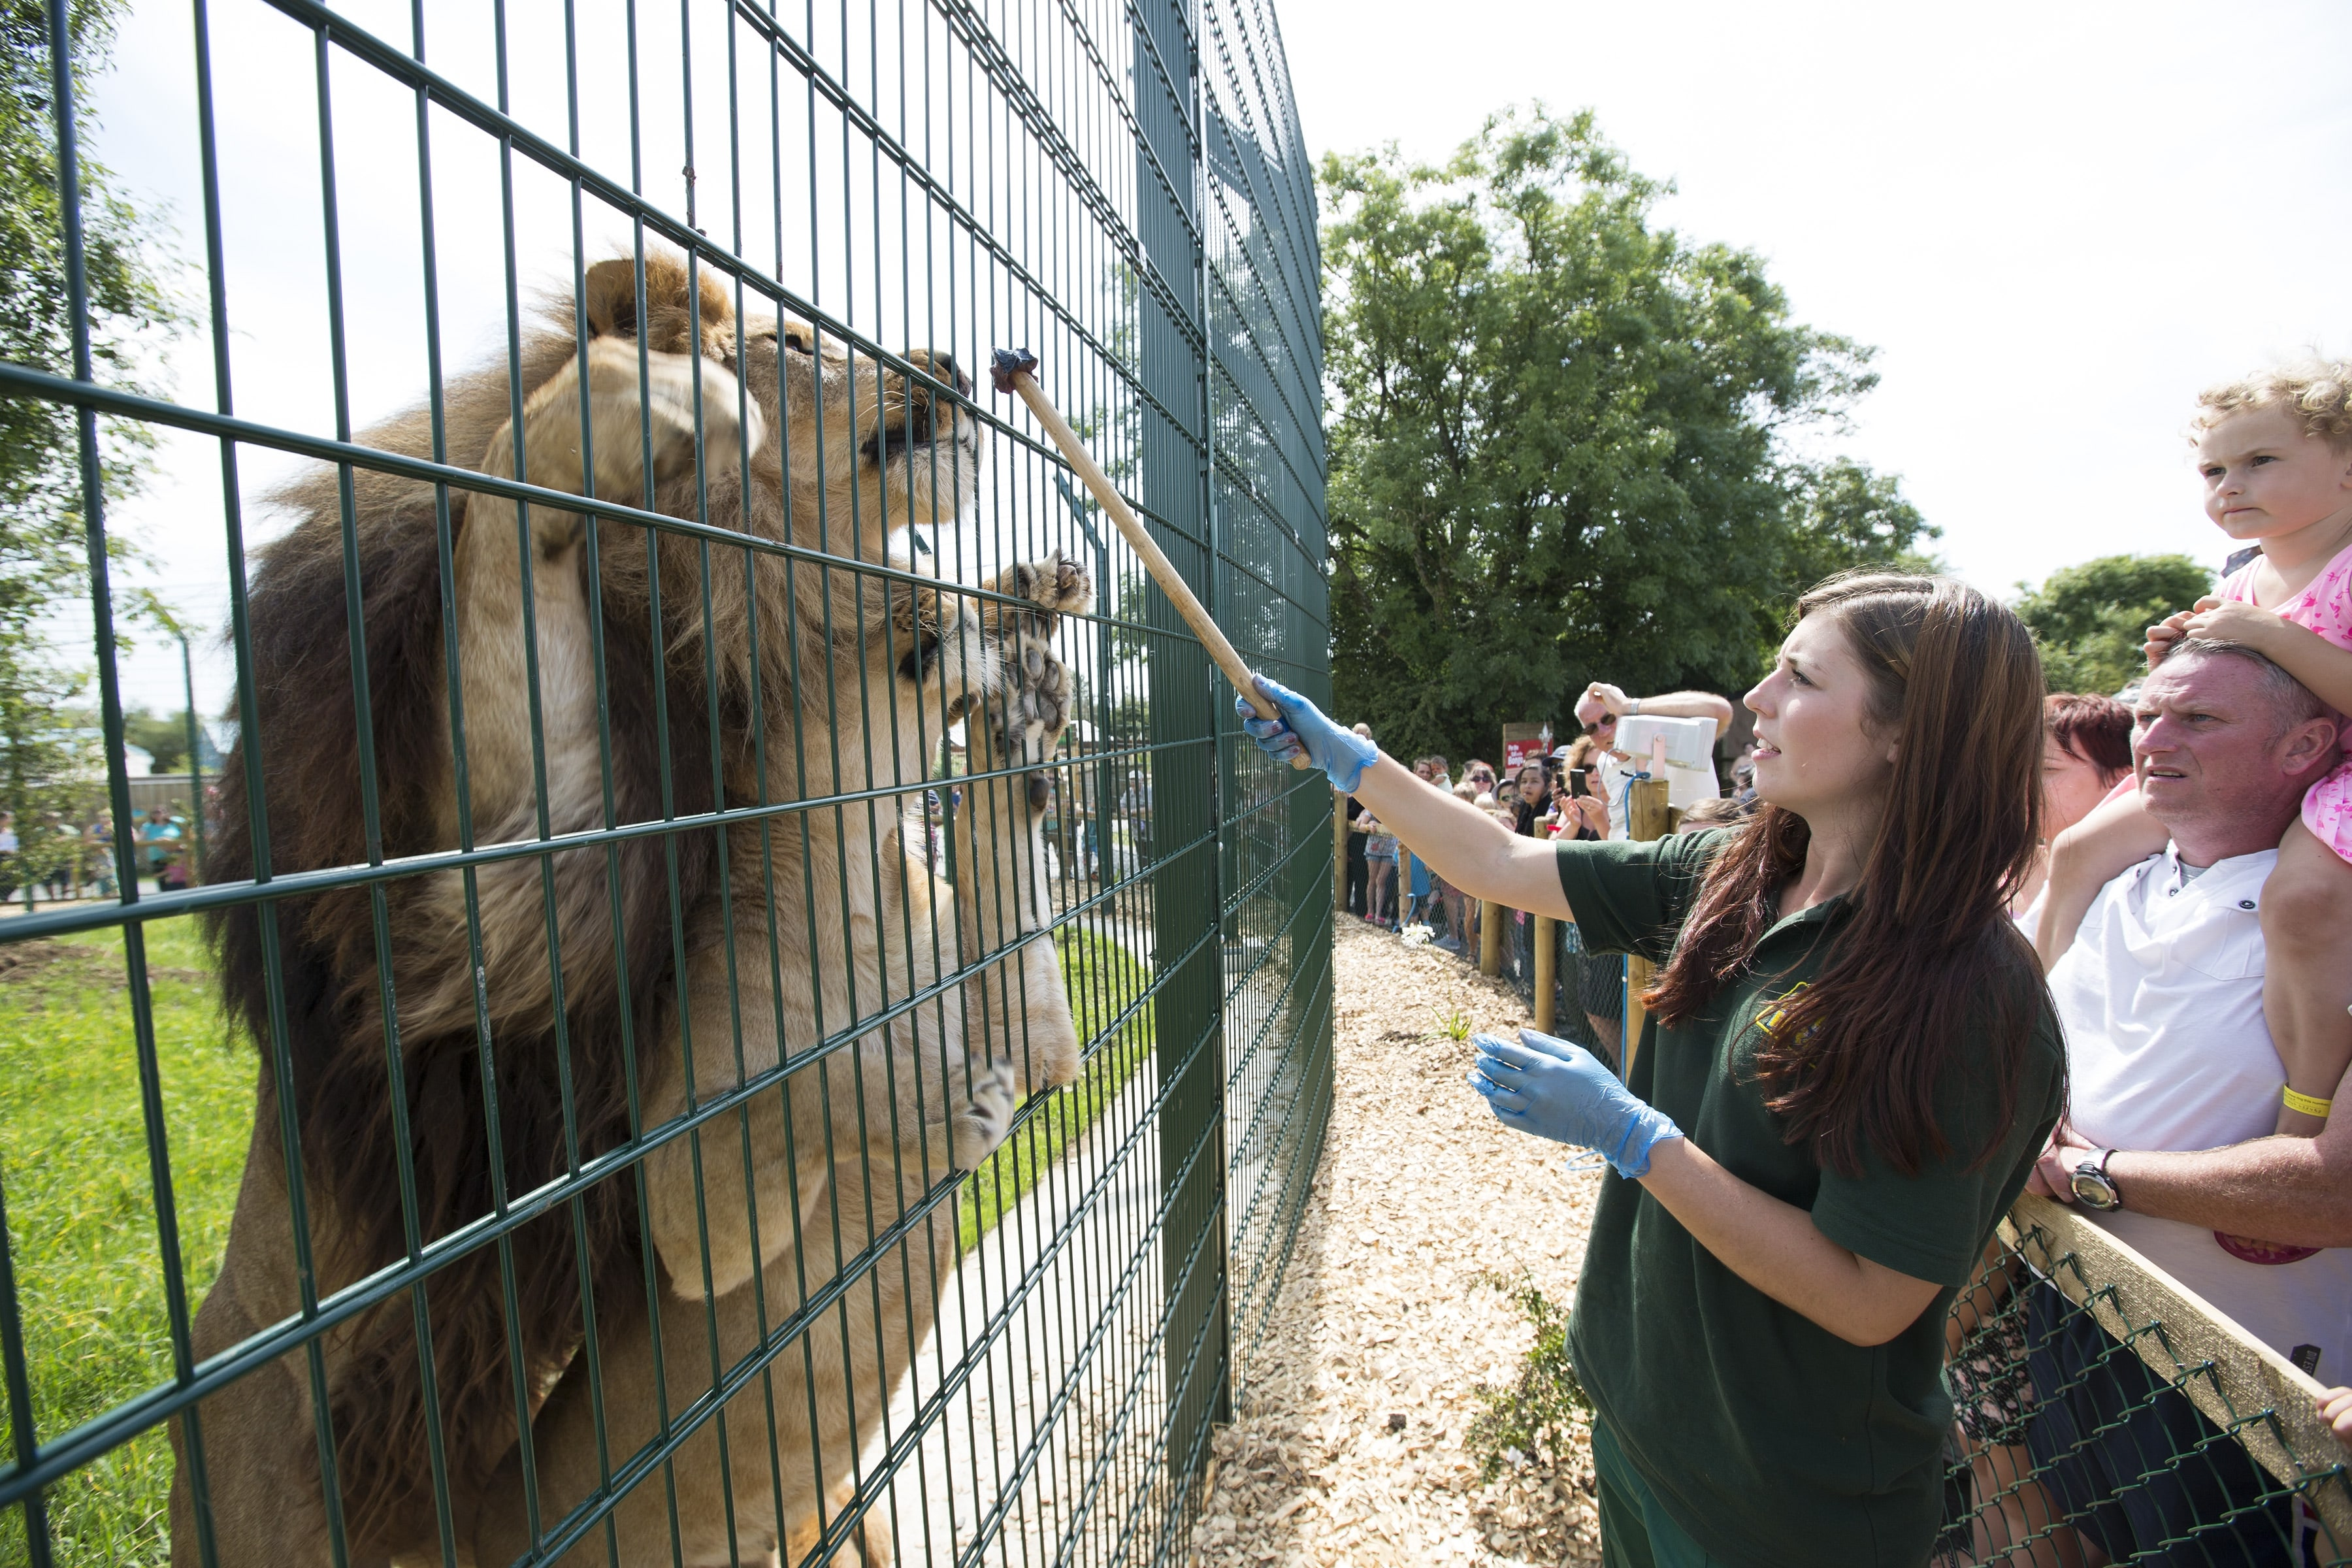 Lion keeper feeding the lions